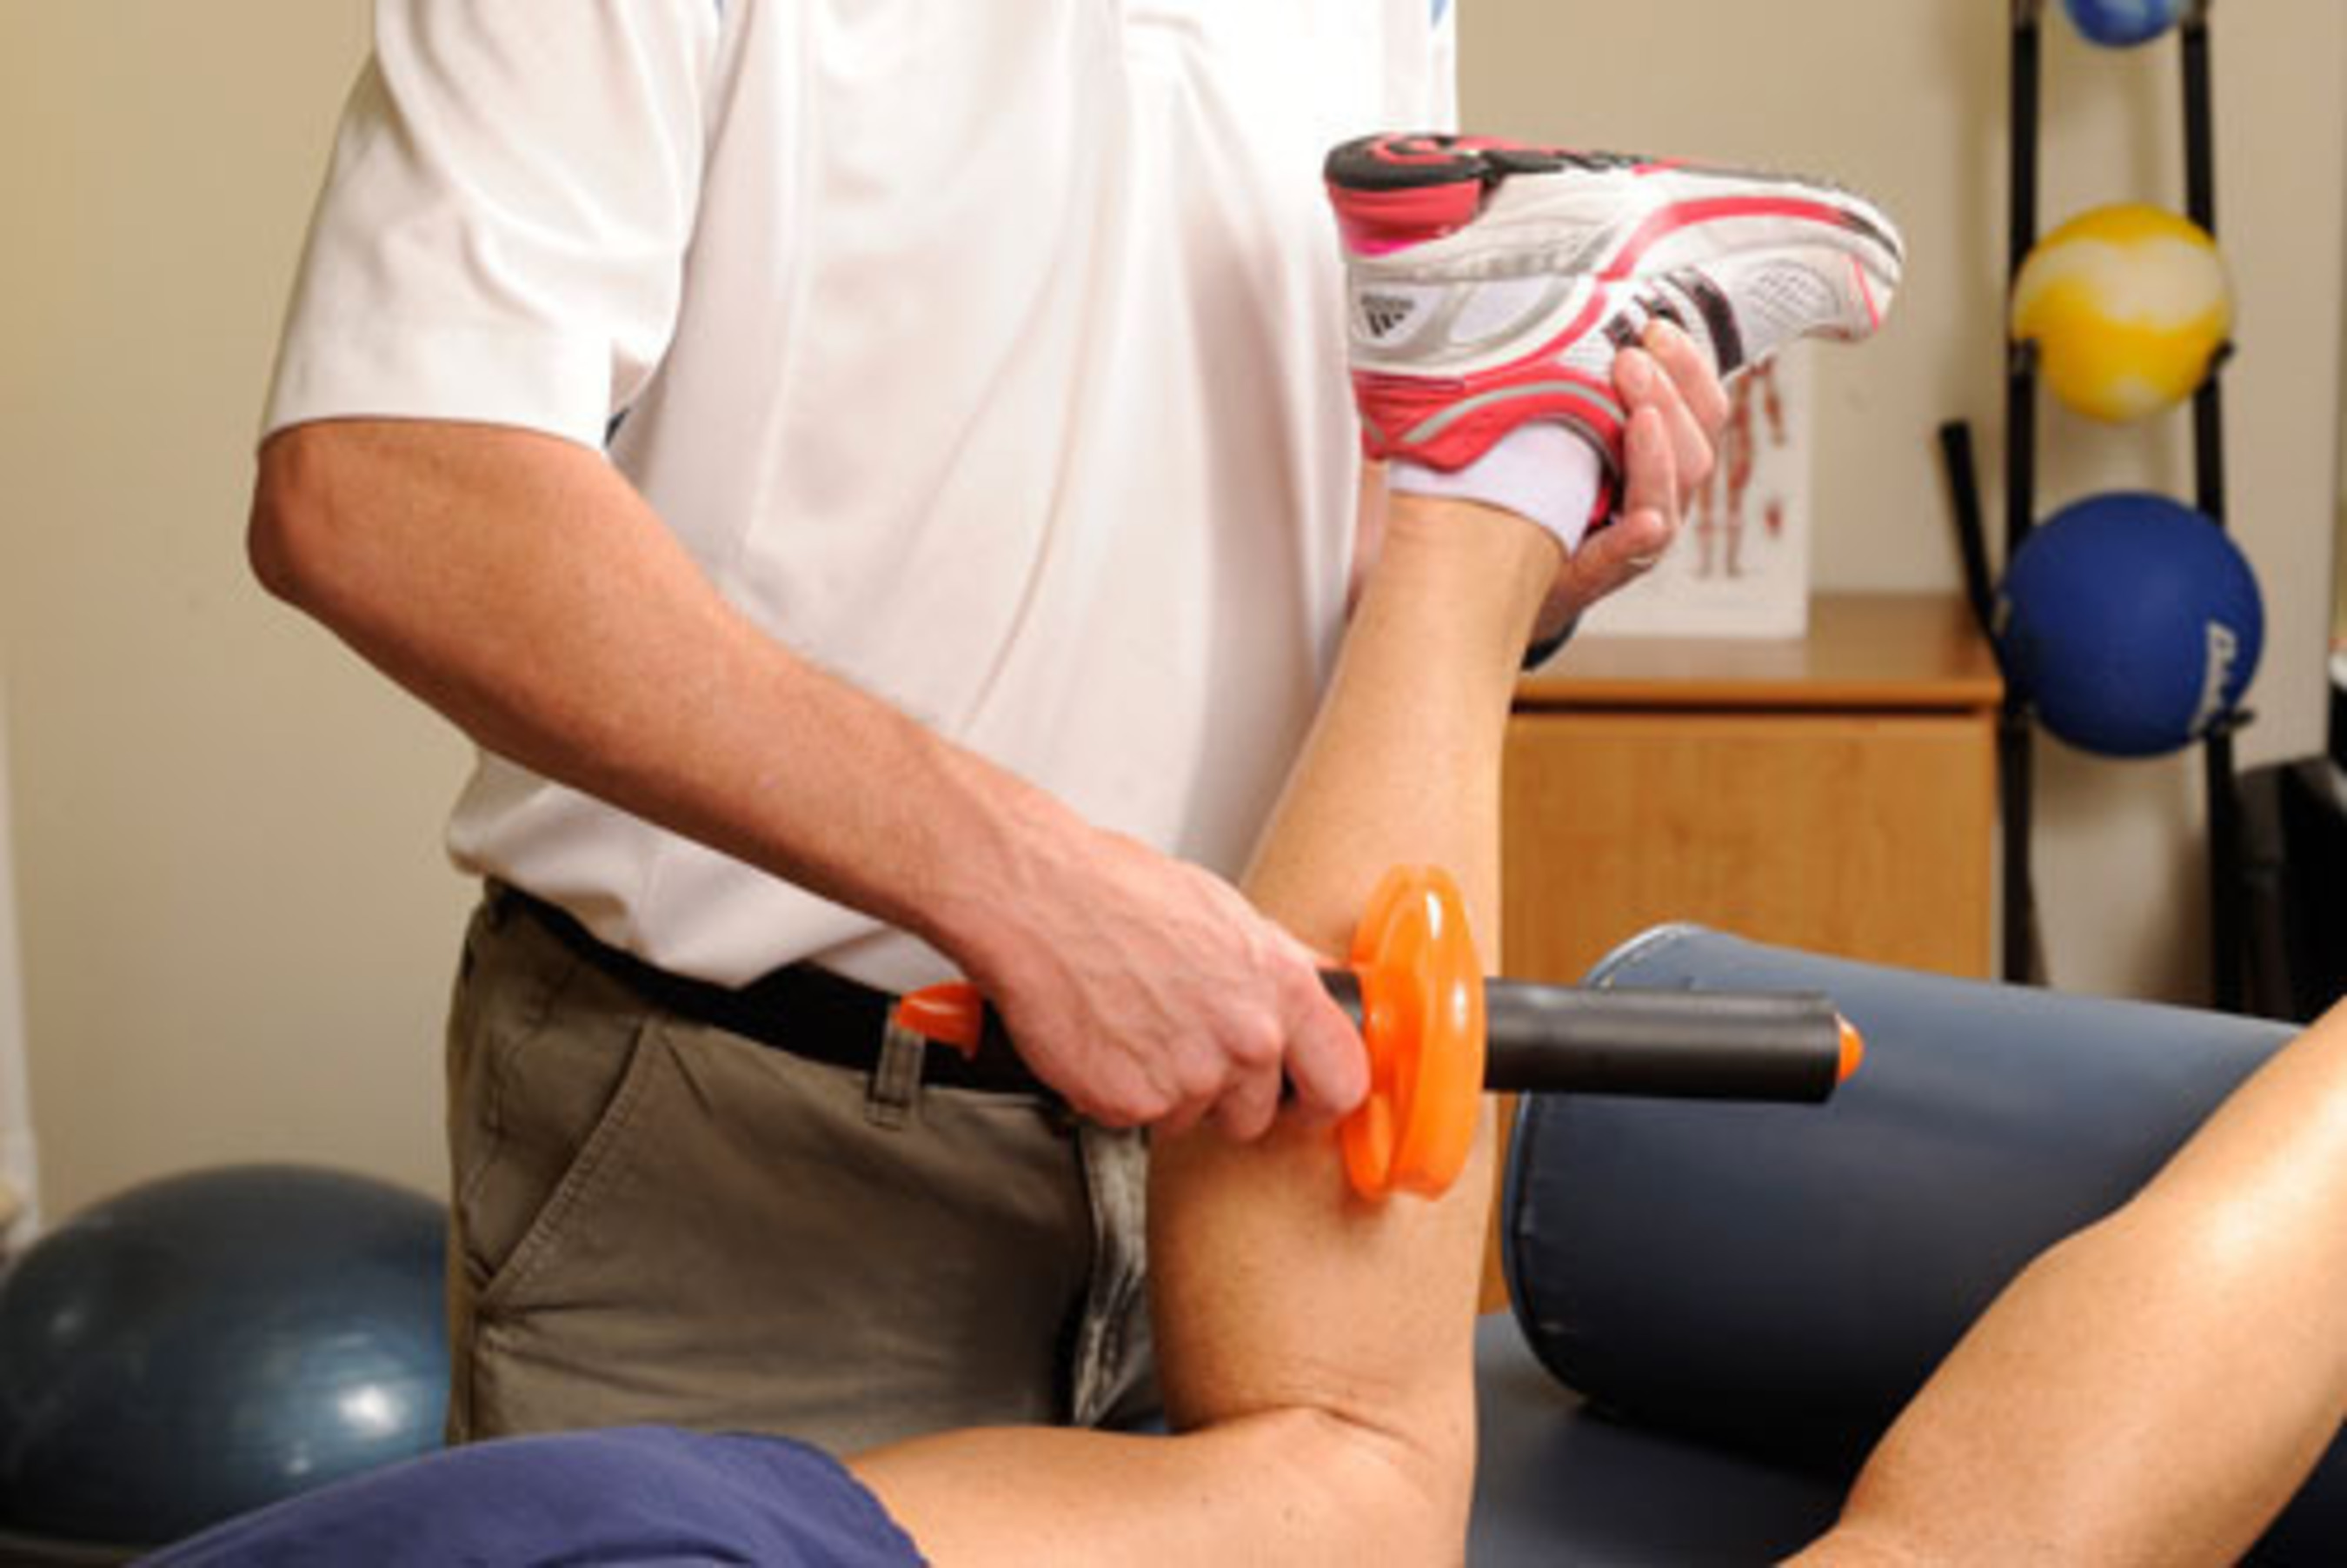 Clinicians use the Therawheel on their patients. (PRNewsFoto/Therawheel)